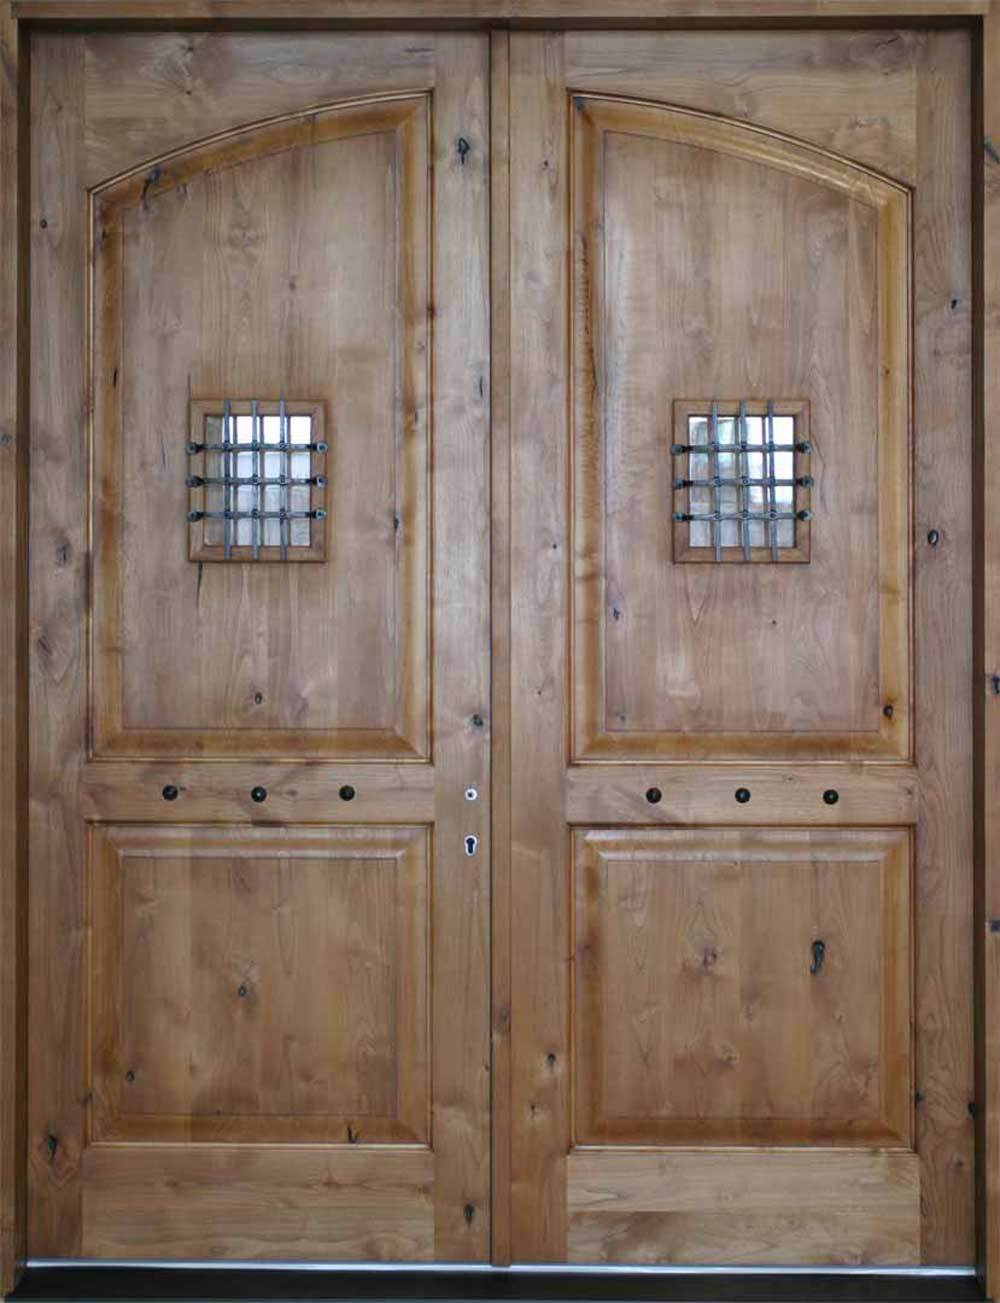 Crested 2 Panel Interior Doors